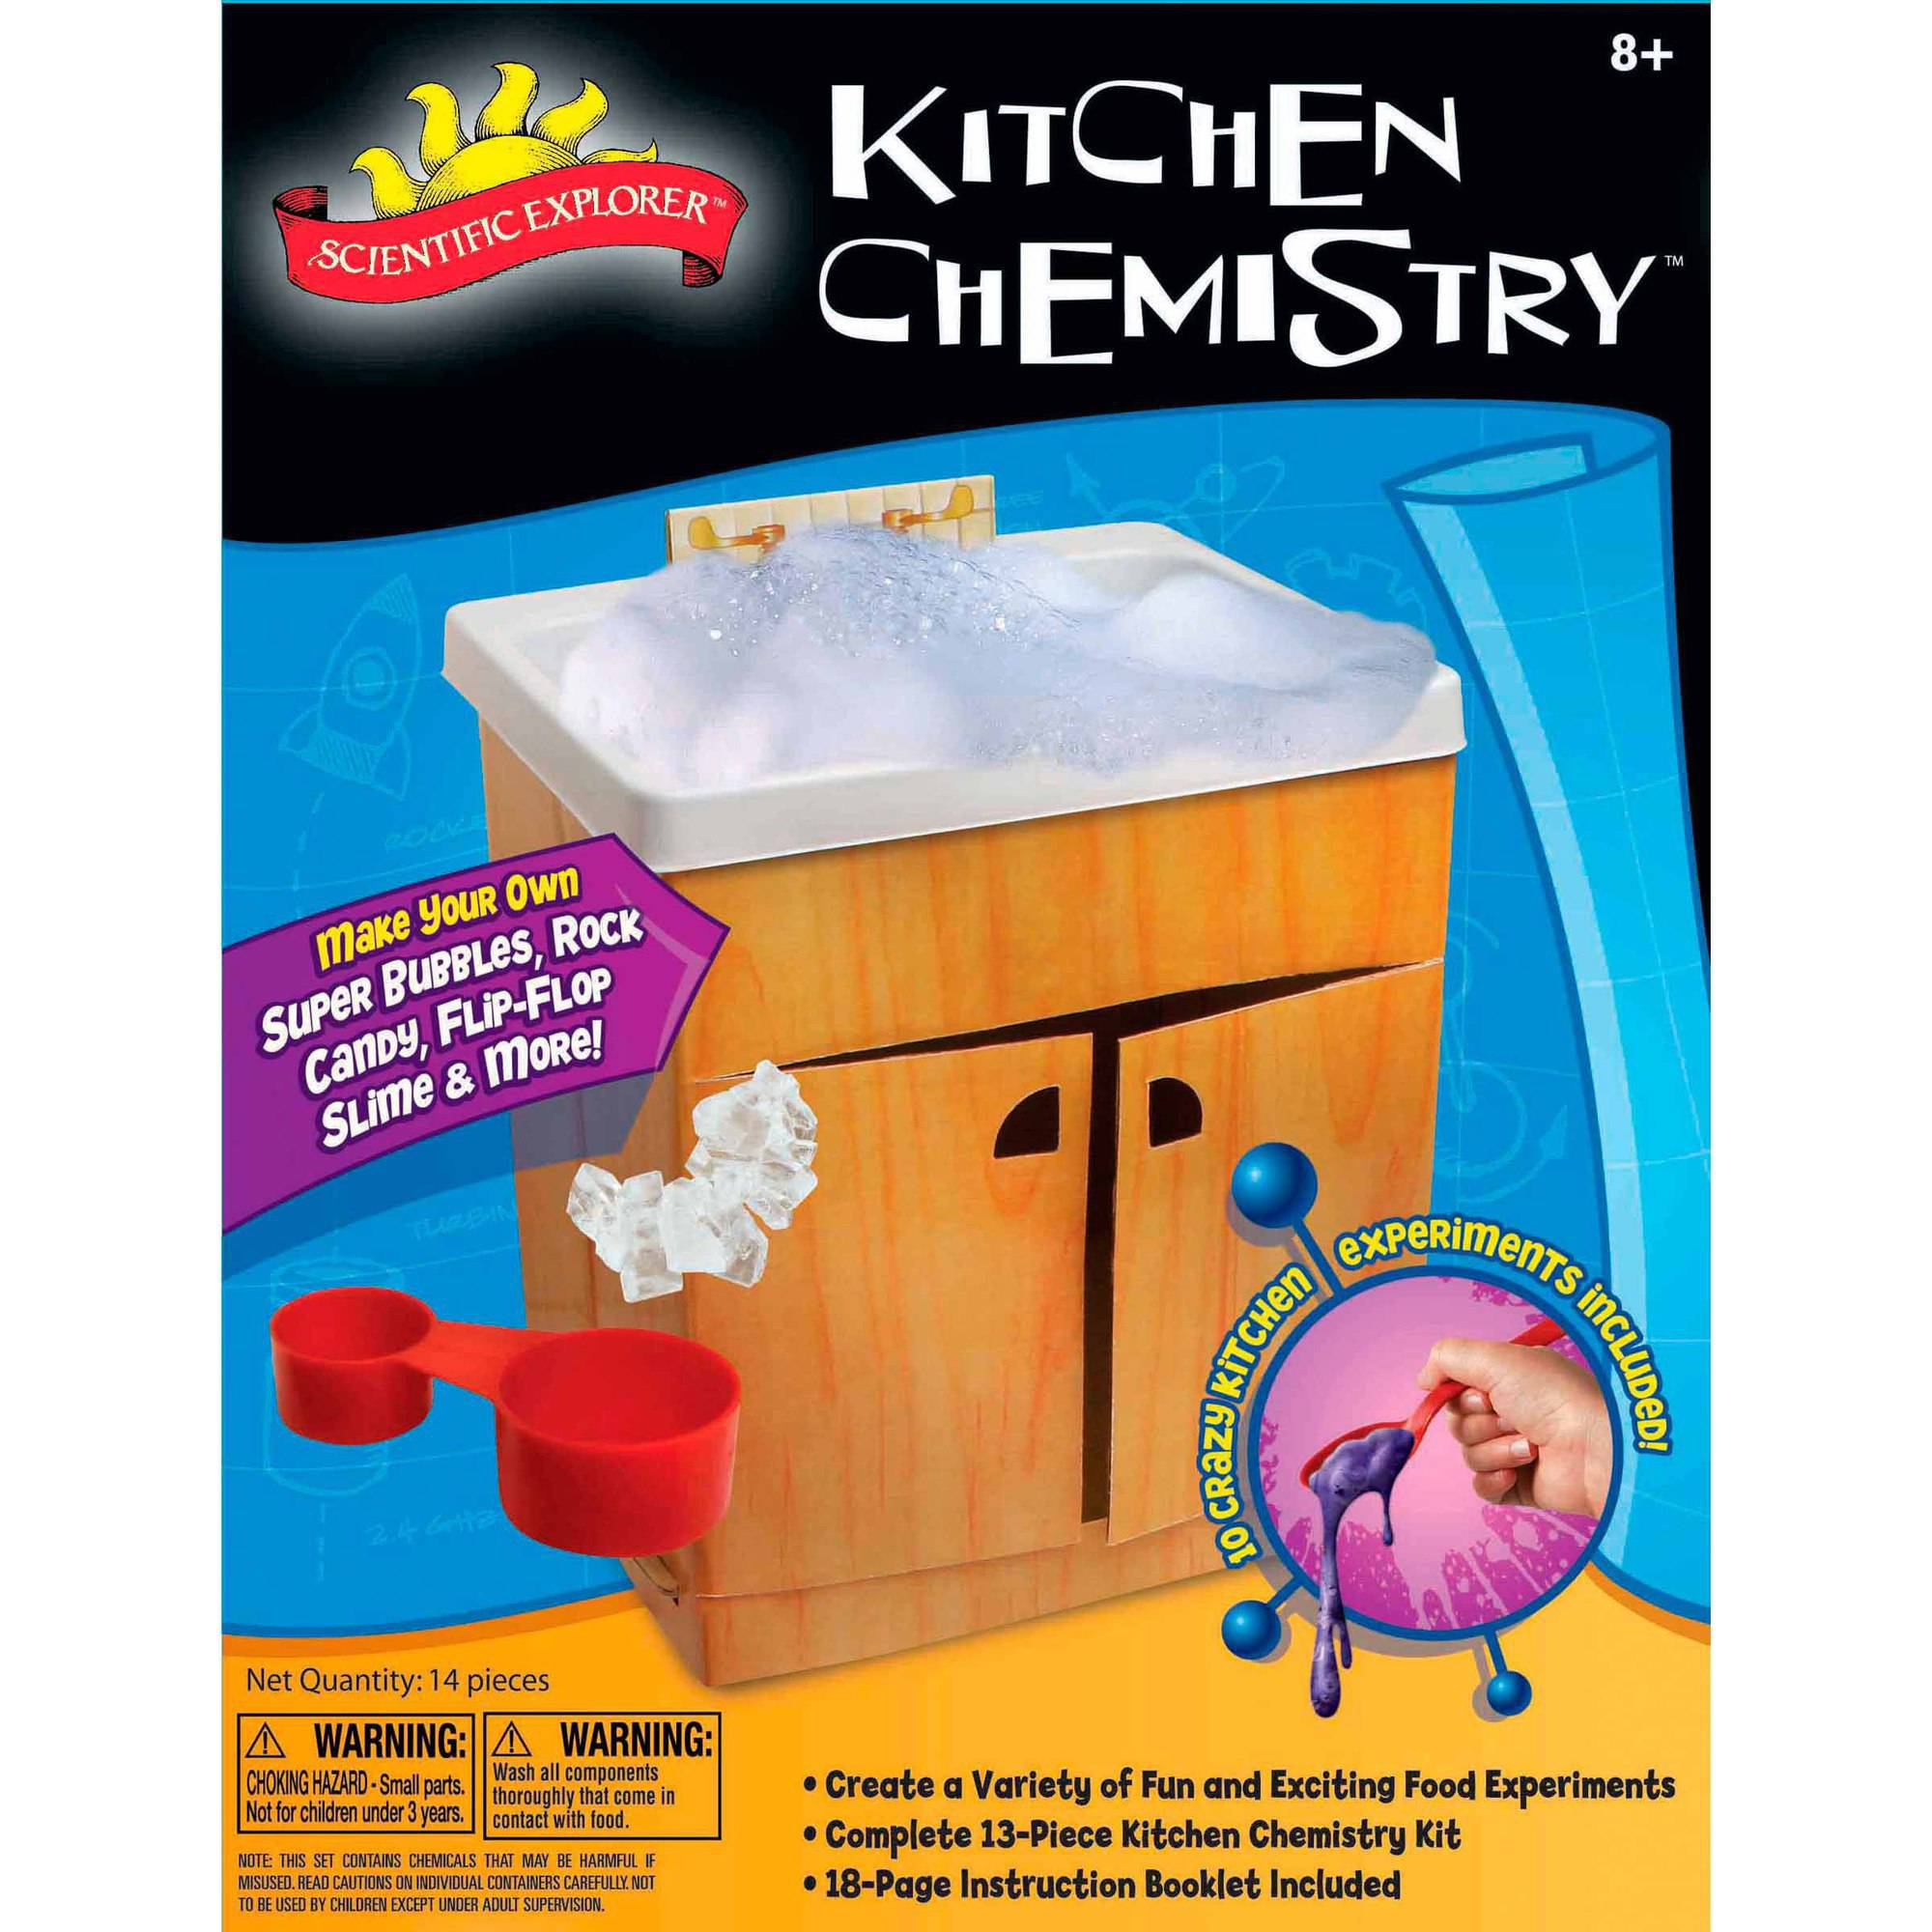 Scientific Explorer Kitchen Chemistry Kit